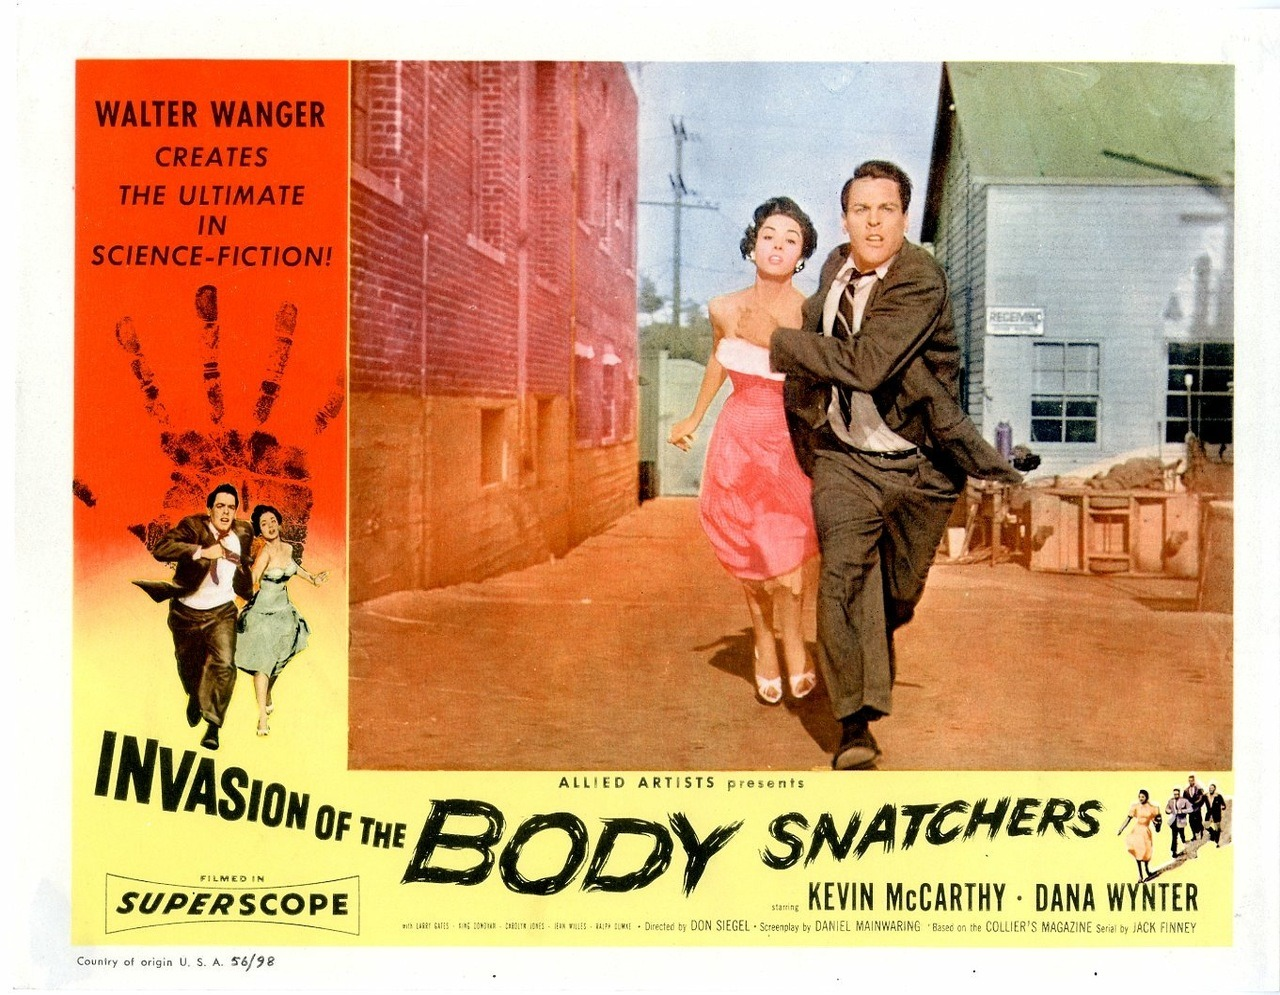 Invasion of the Body Snatchers, US lobby card. 1956